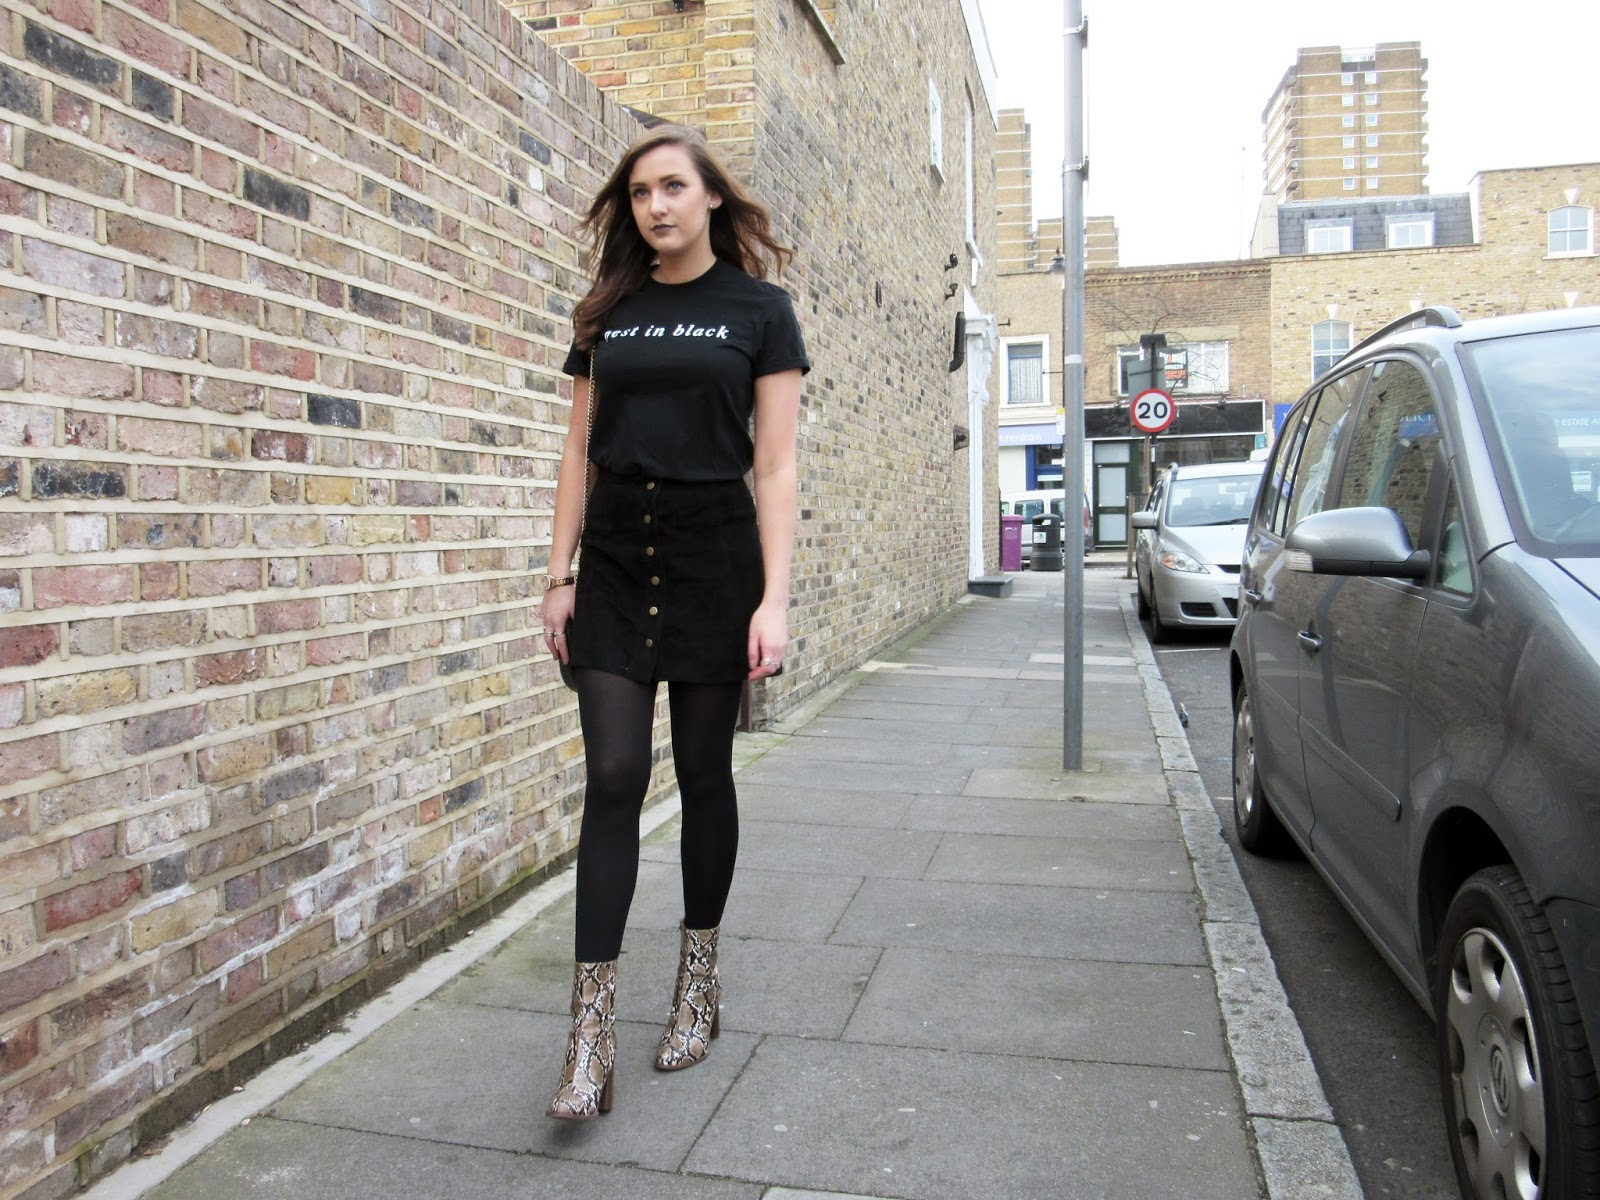 Best In Black // All in Black Fashion Outfit OOTD WIWT Street Style London Blogger  ft. ASOS, TOPSHOP & MANGO // Lauren Rose